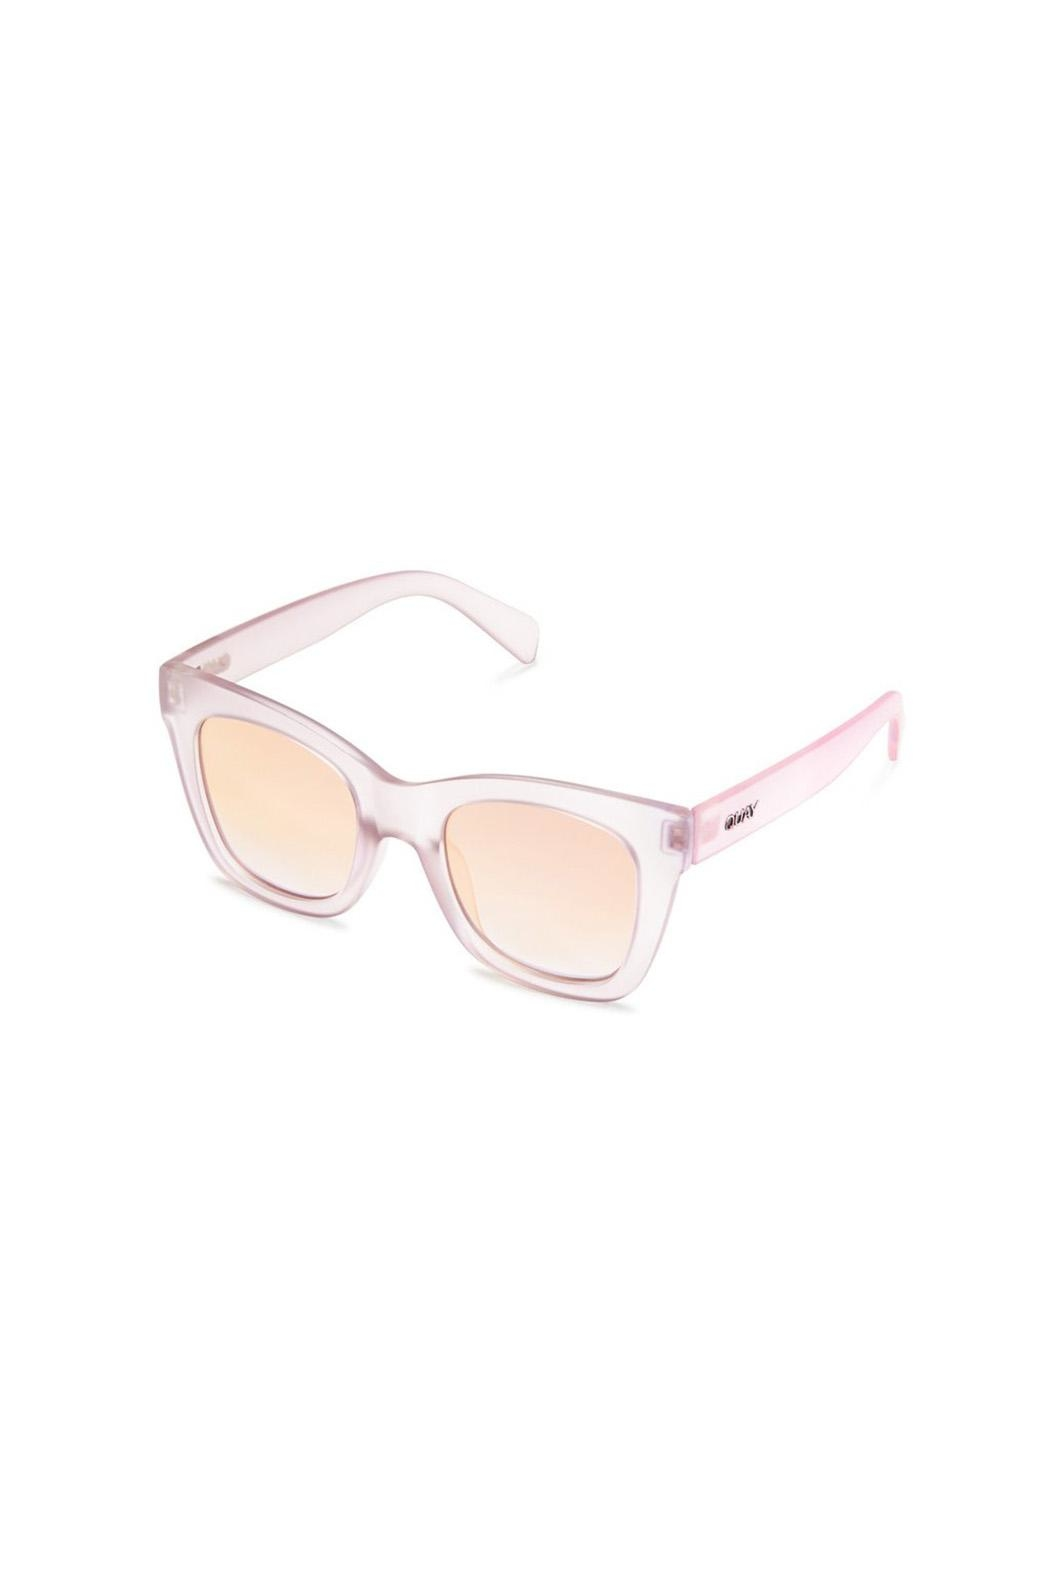 fbbdee484950c Quay Australia After Hours Pink Sunnies from Toronto by Cloakroom ...